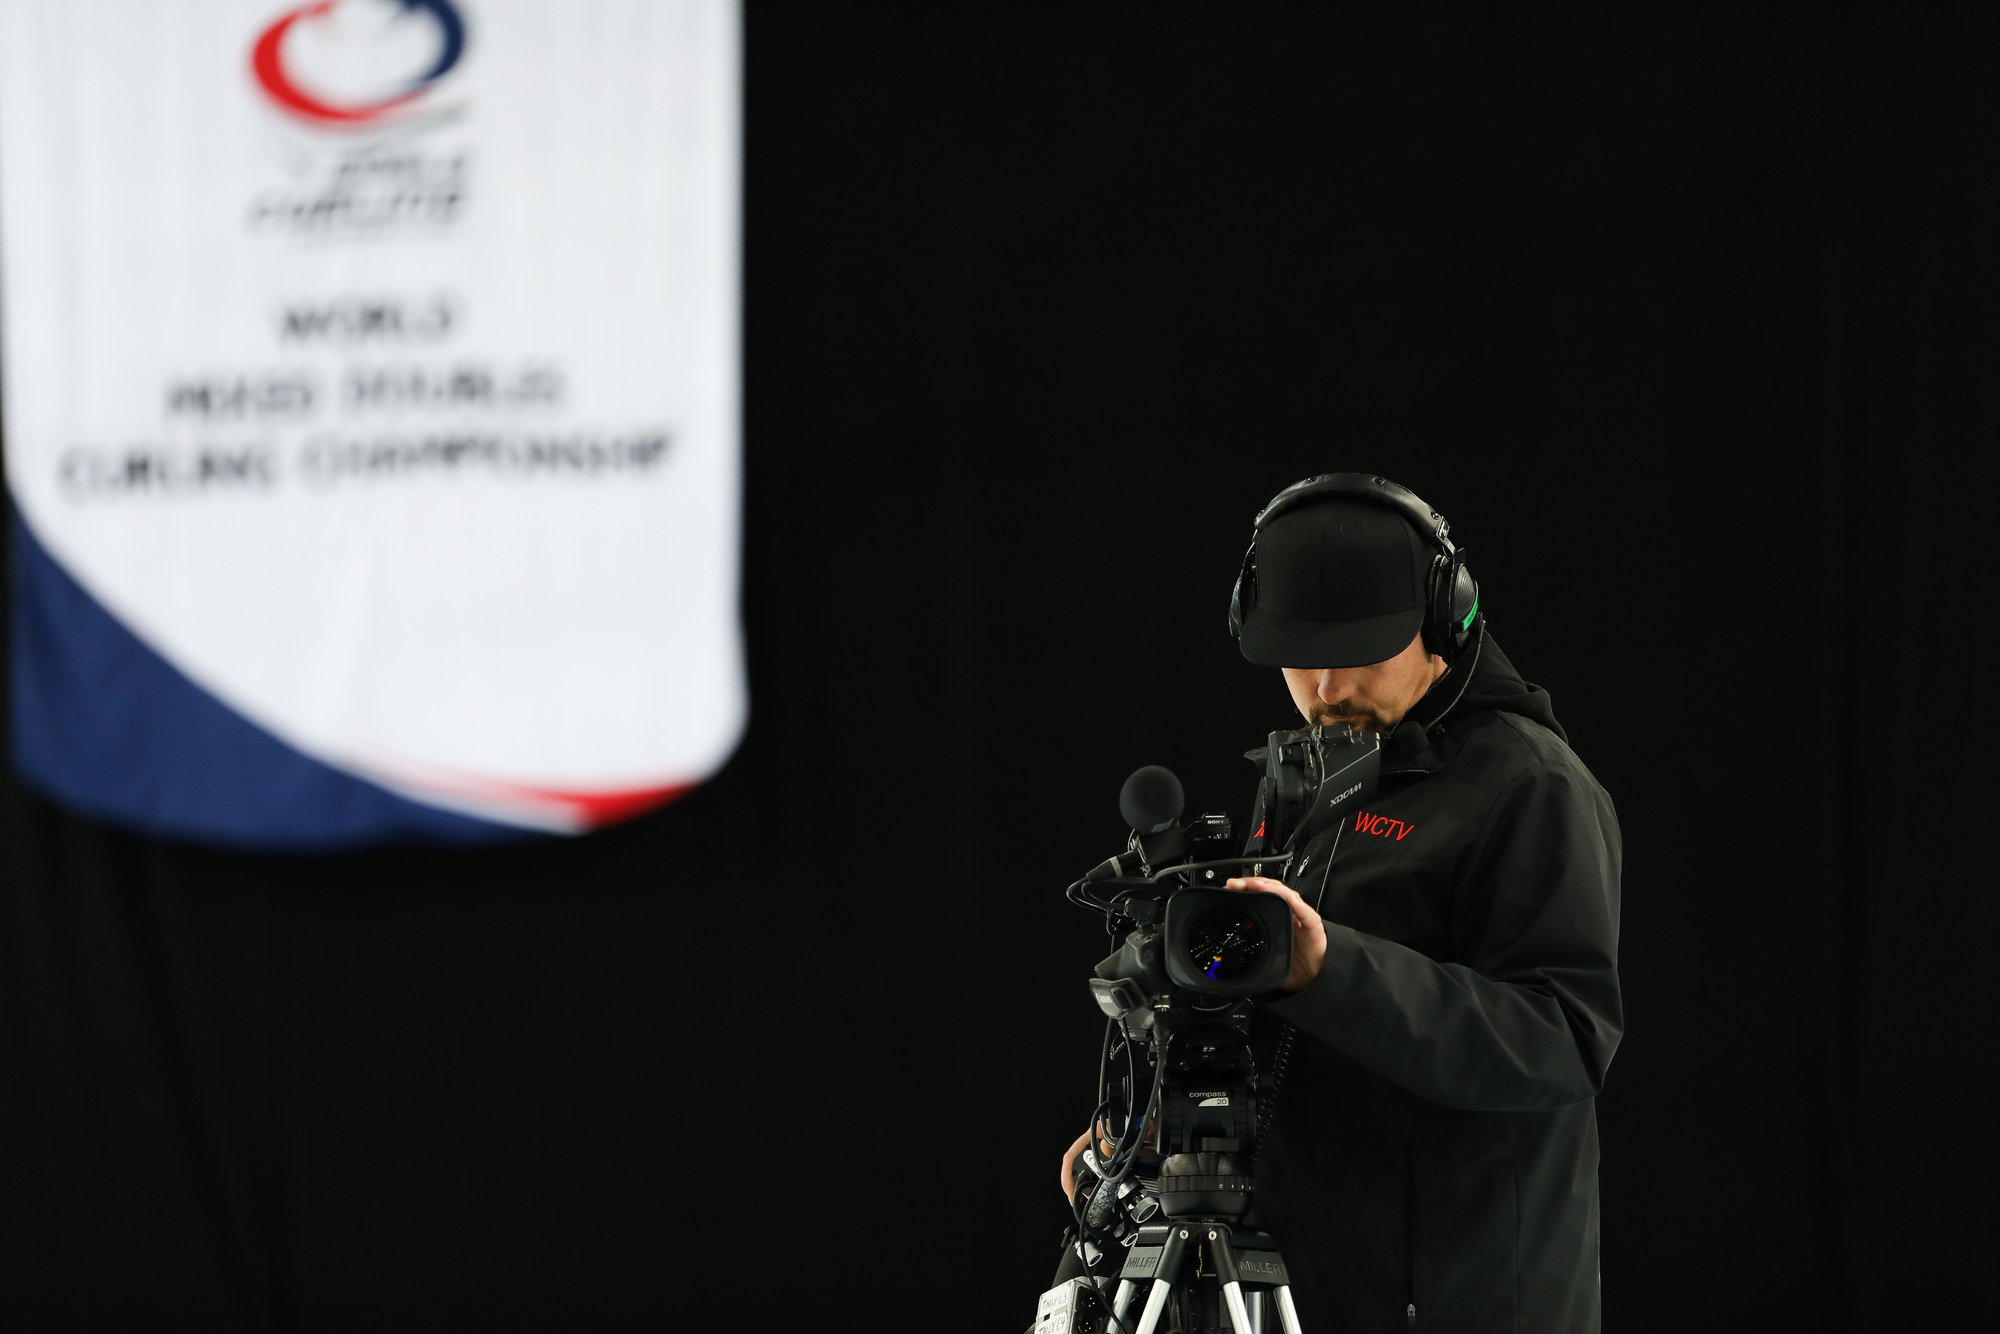 World Mixed Doubles Curling Championship 2021 broadcasting information - World Curling Federation